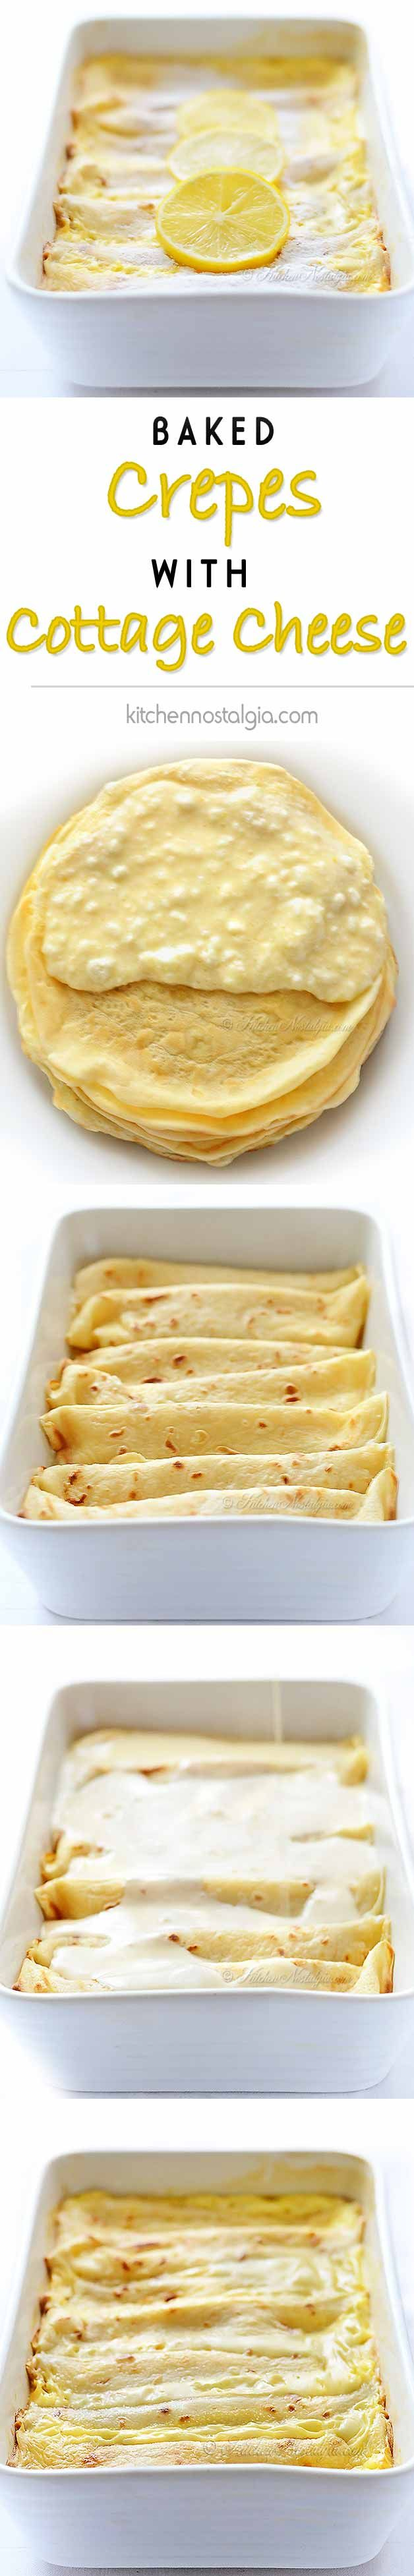 Baked Pancakes with Cottage Cheese - Crepes stuffed with cottage cheese / lemon zest / vanilla filling and sour cream topping; Croatian Palachinka by kitchennostalgia.com